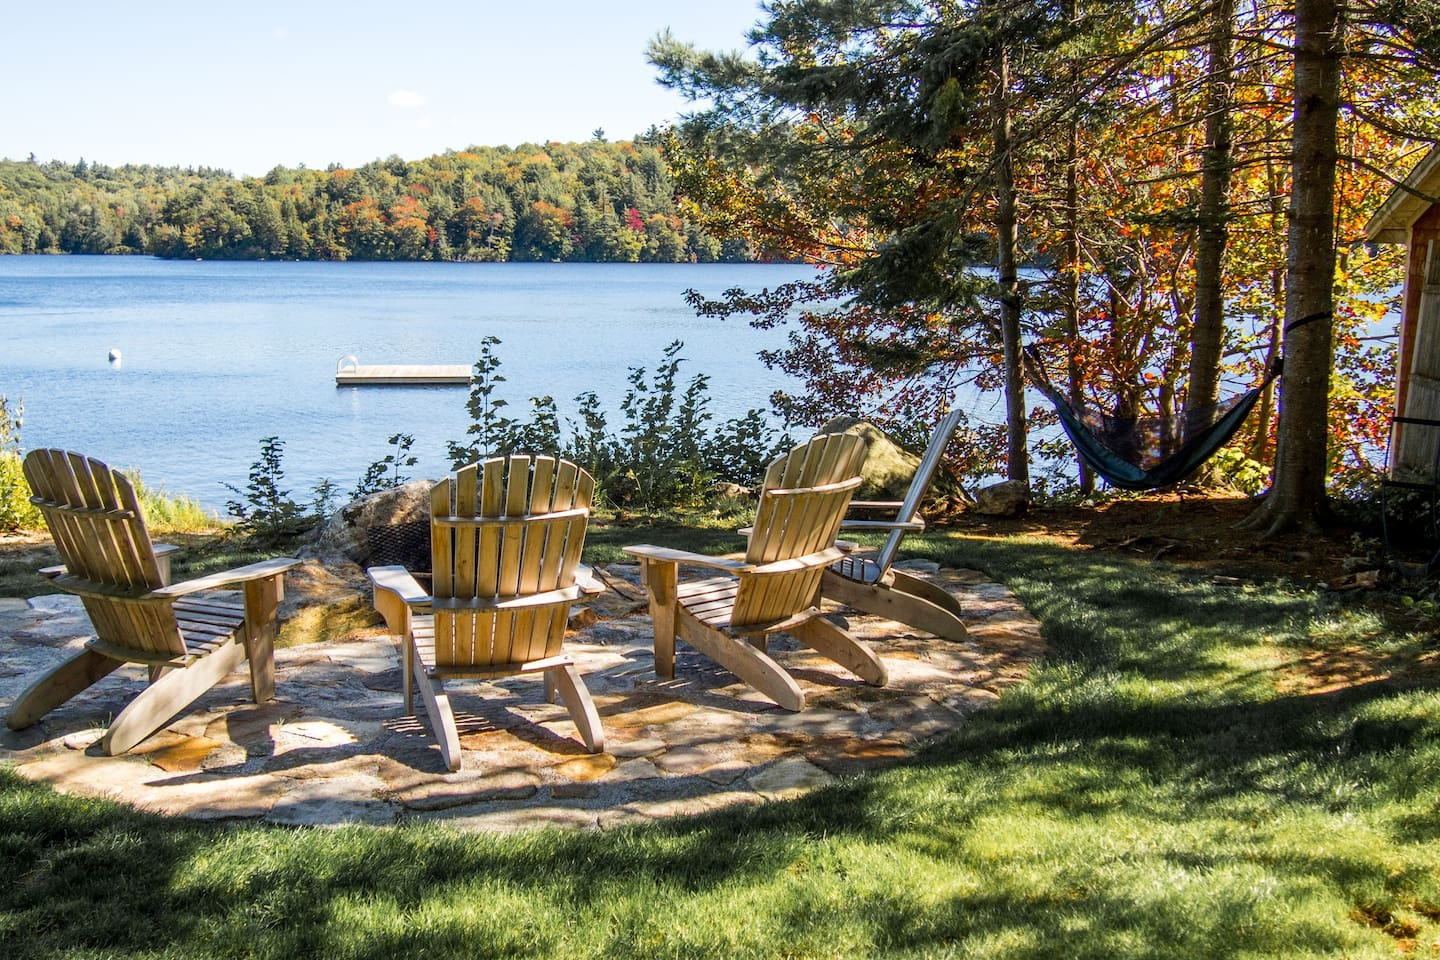 Millen Lake- A hidden gem in New Hampshire's Sunapee Region